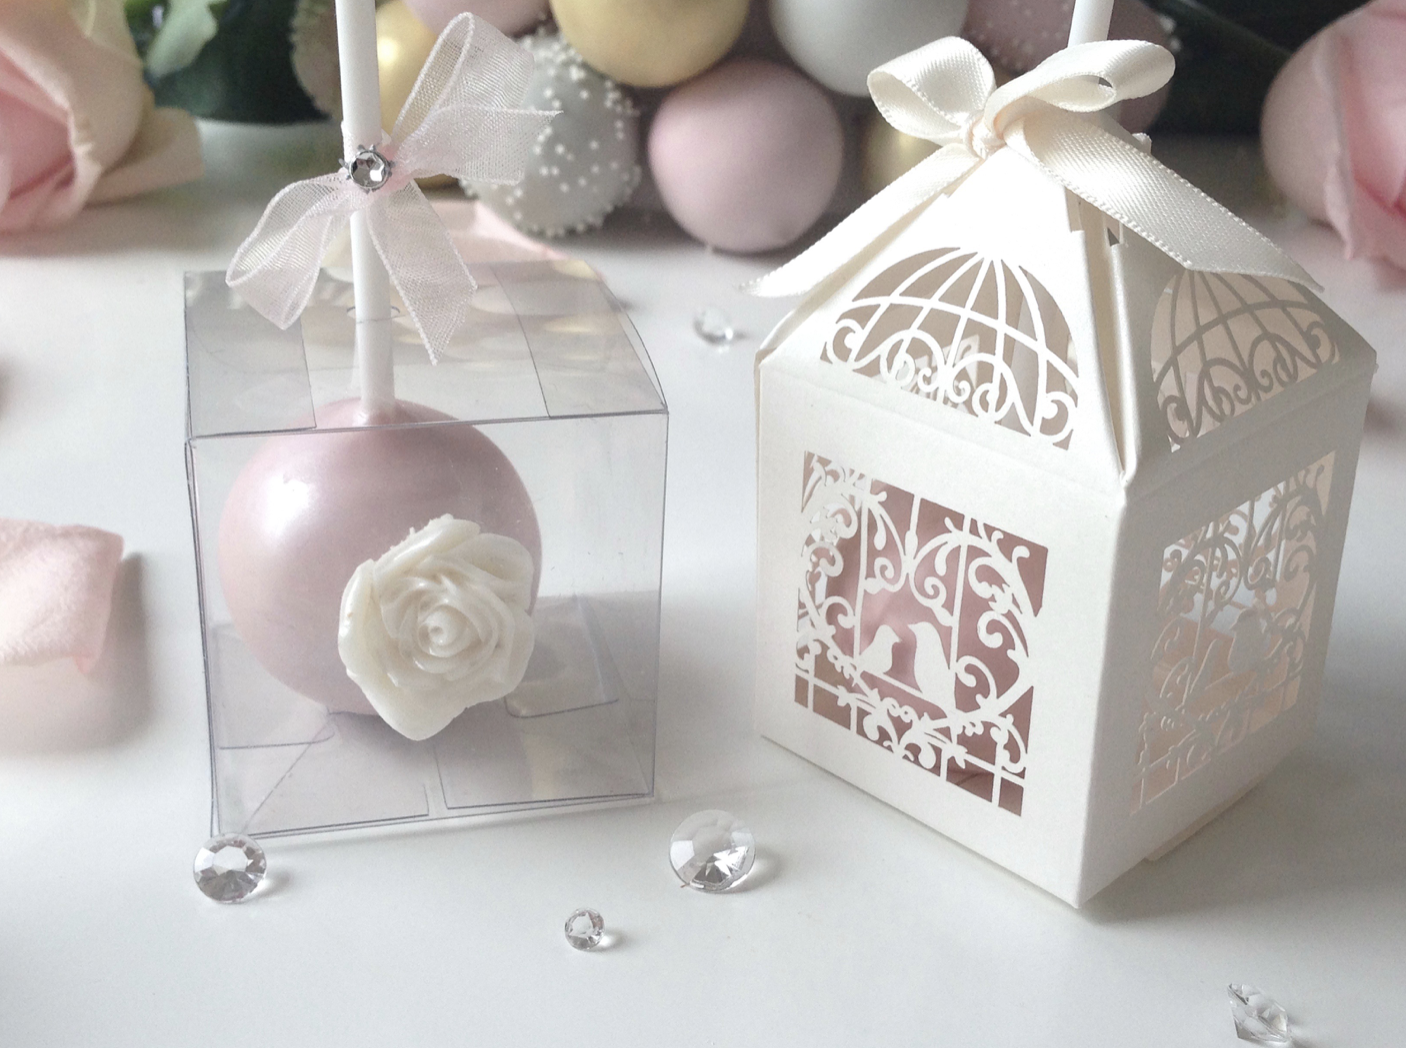 Beautiful Handmade Wedding Cake Pops We Tailor Designs To Co Ordinate With Your Theme